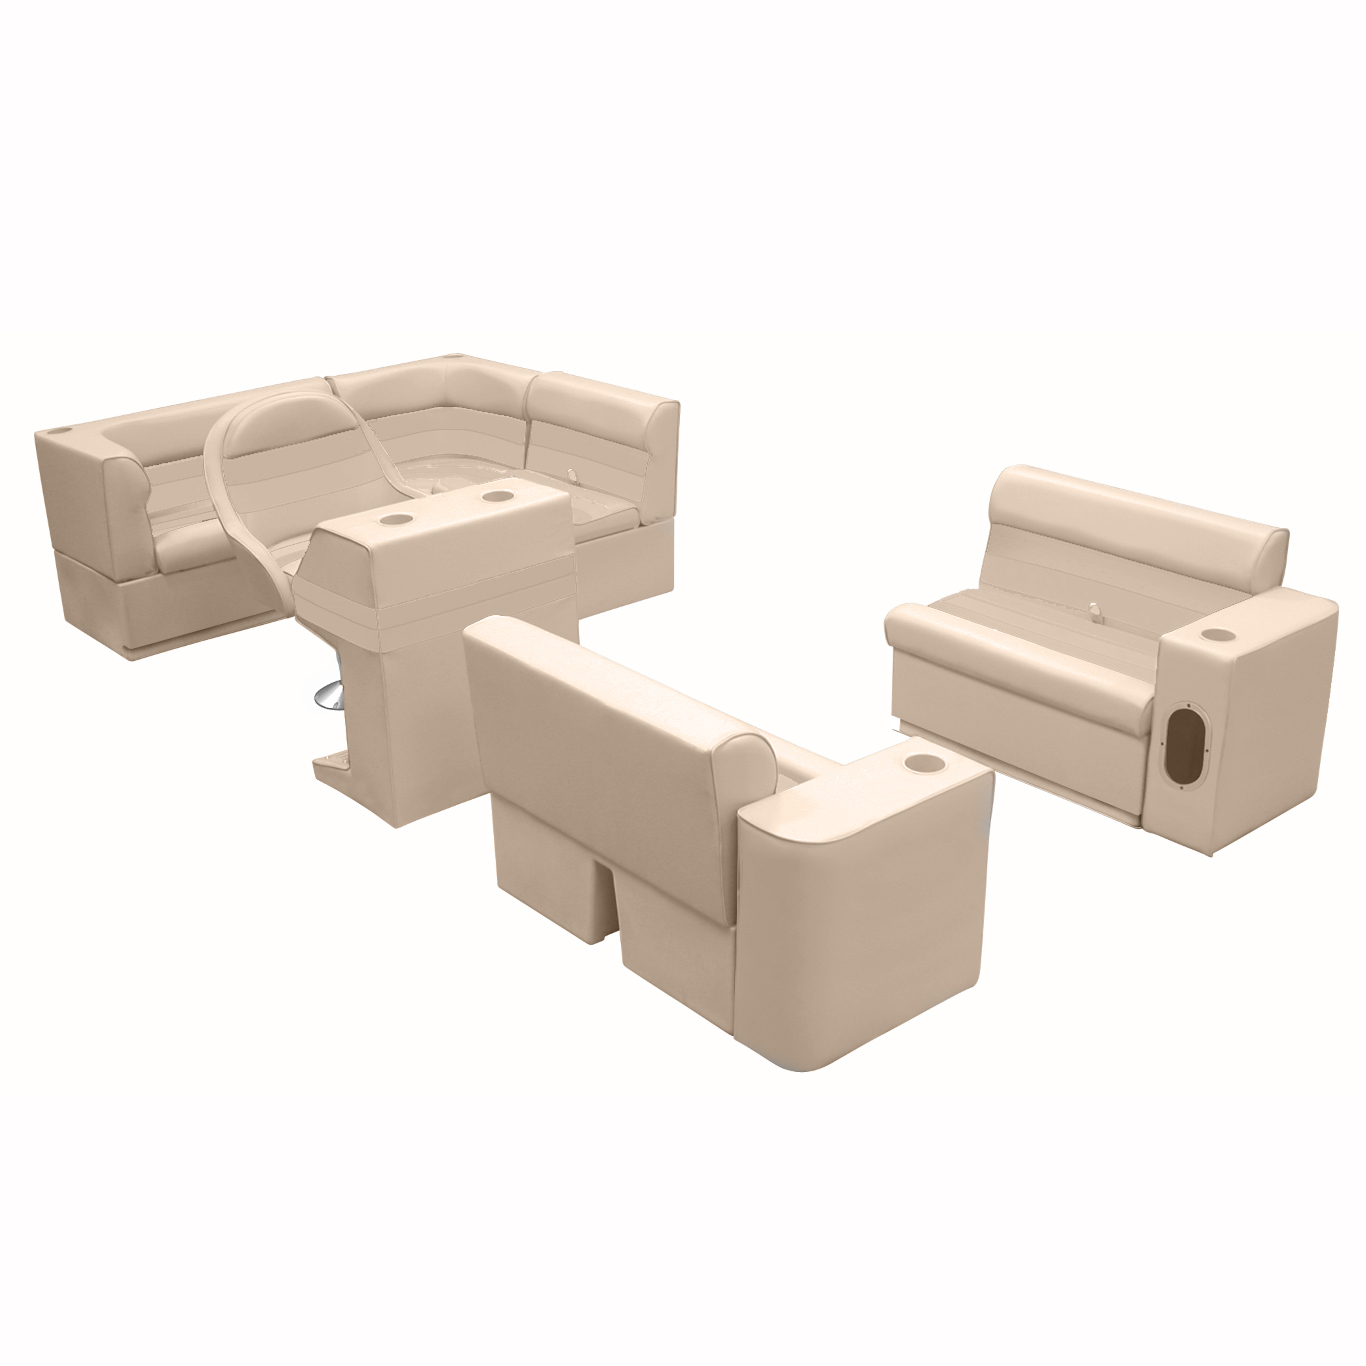 Deluxe Pontoon Furniture with Toe Kick Base, Group 1 Package, Sand